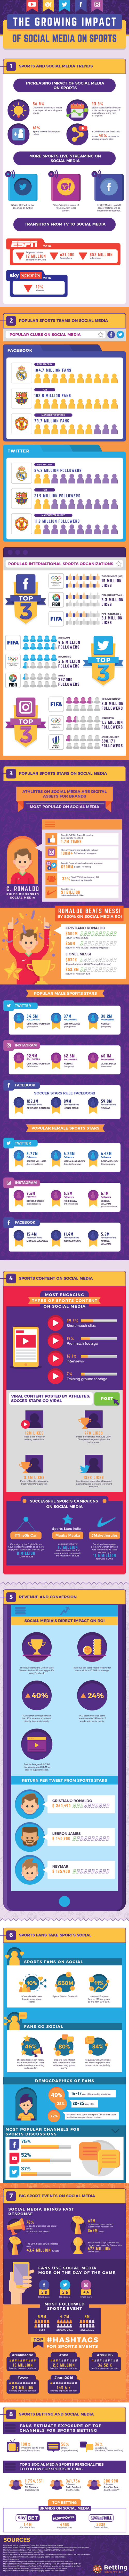 social media and sport infographic